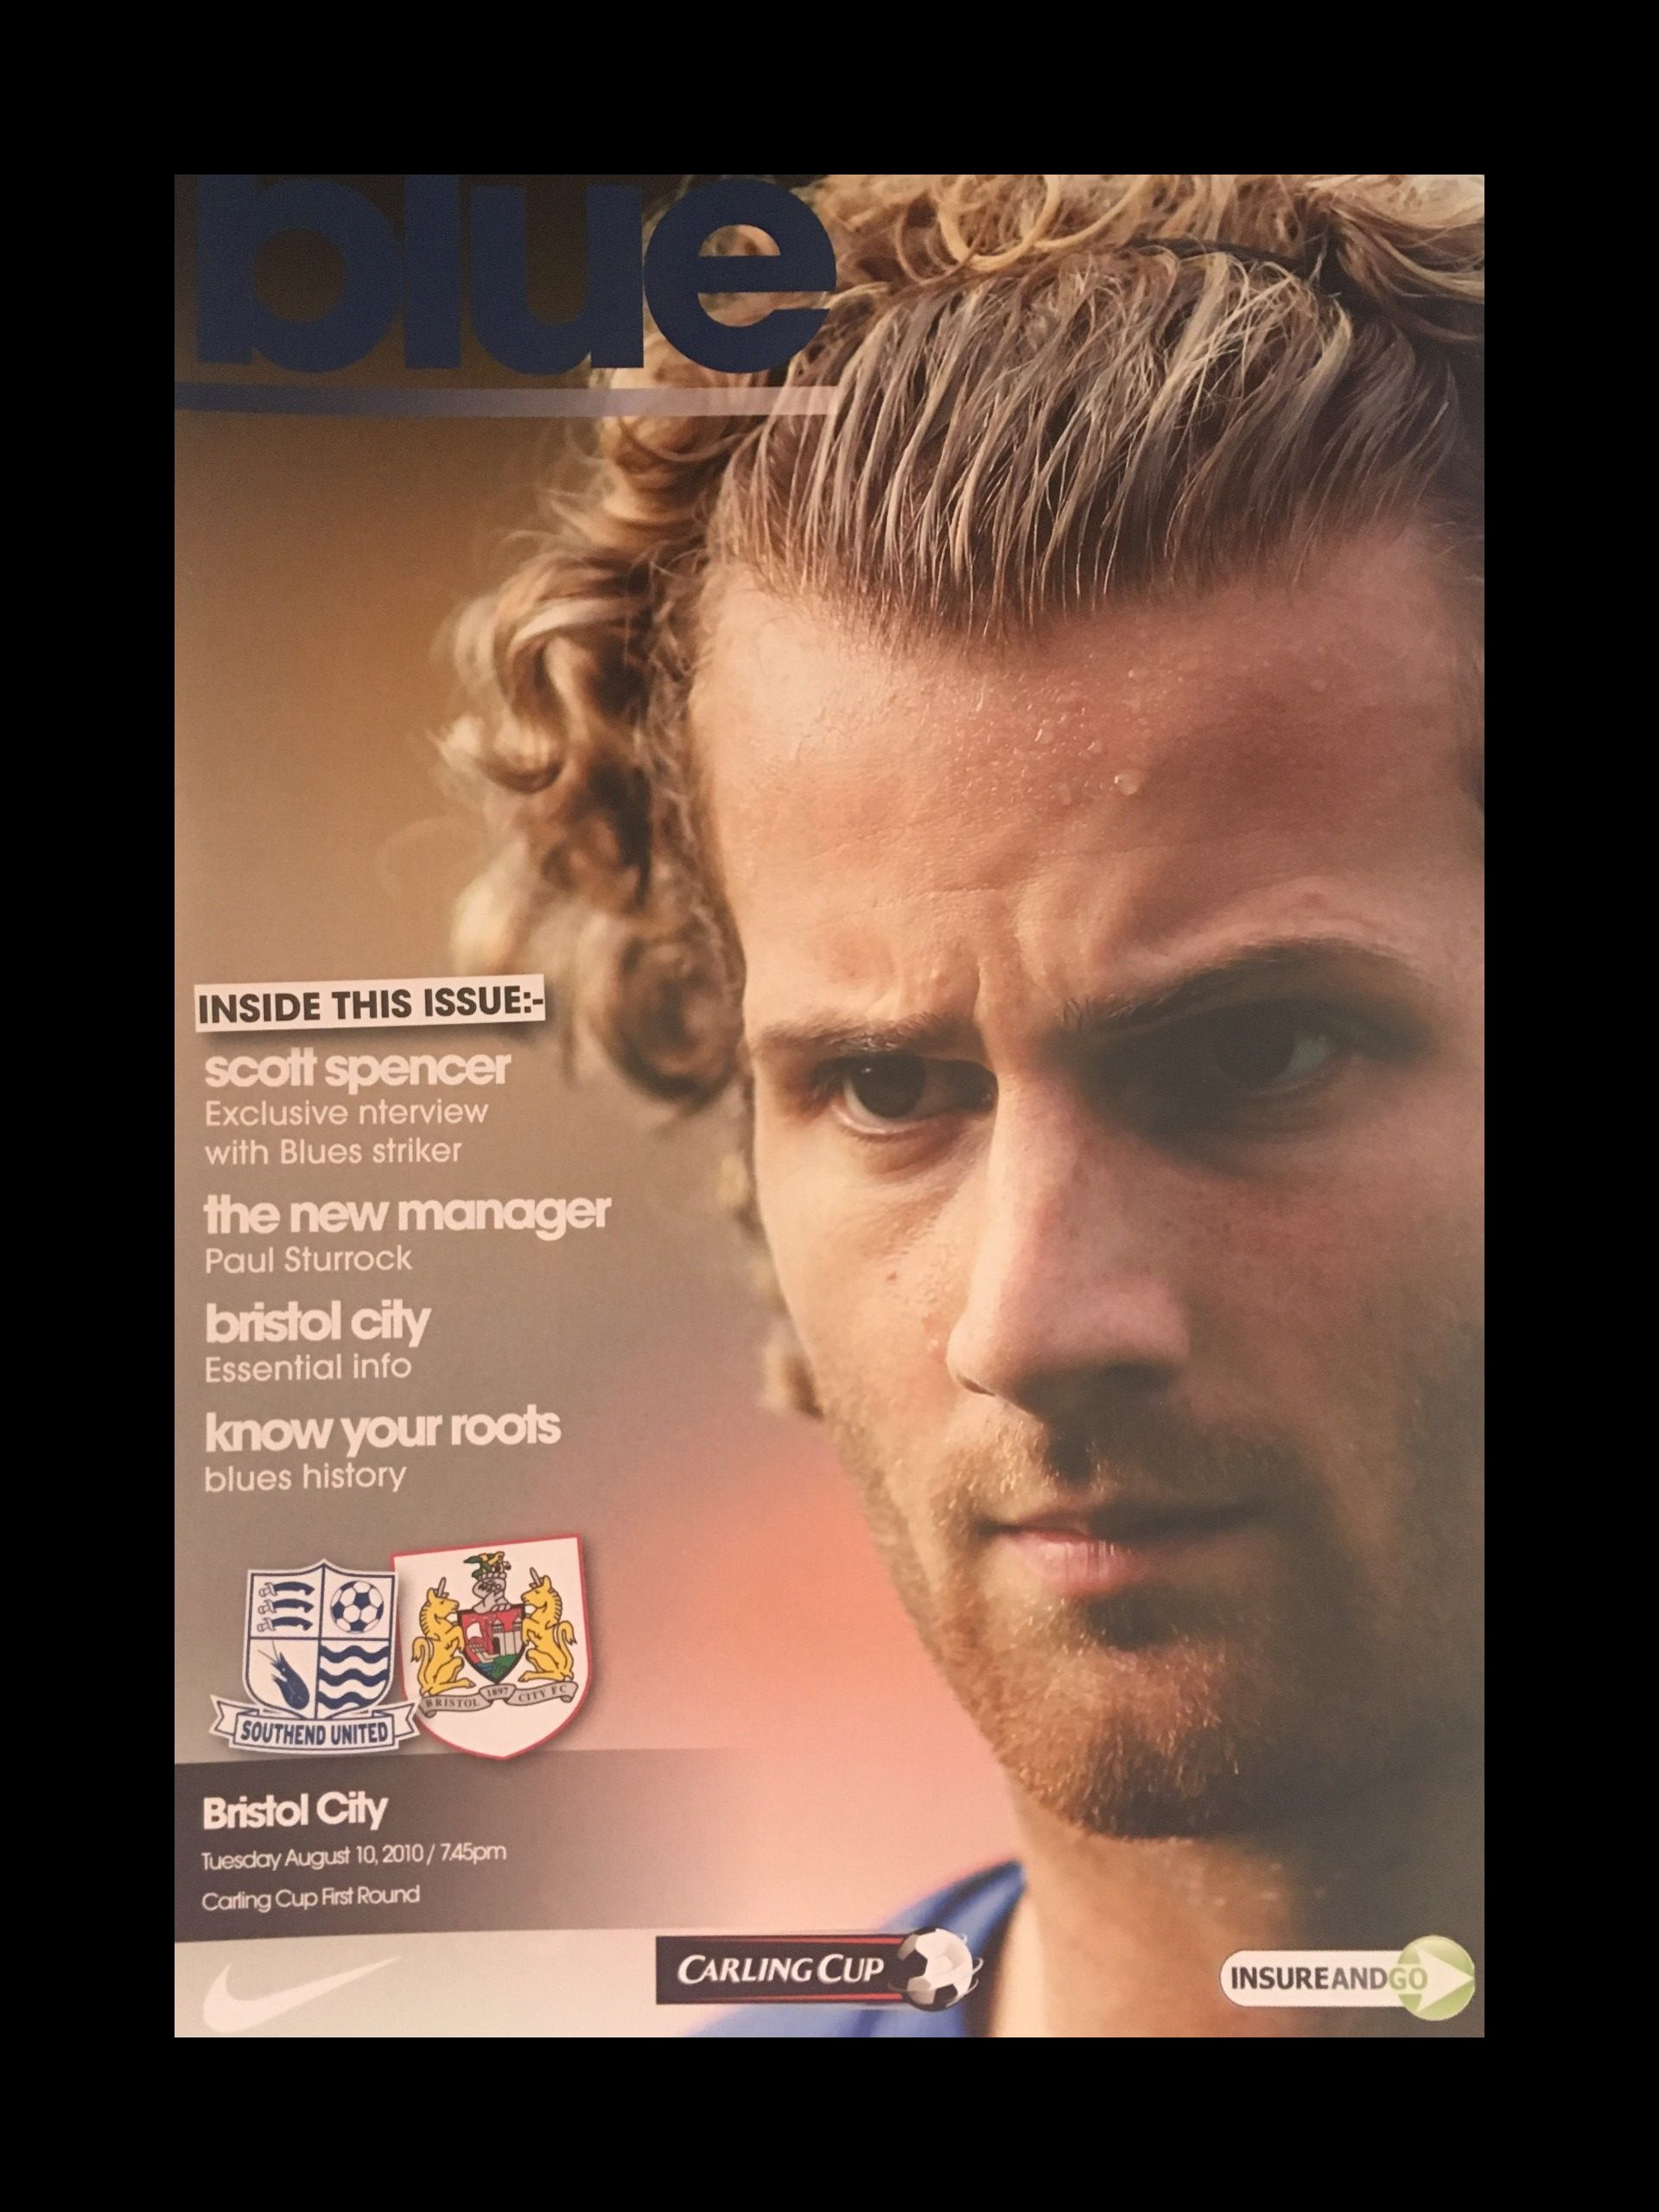 Southend United v Bristol City 10-08-2010 Programme